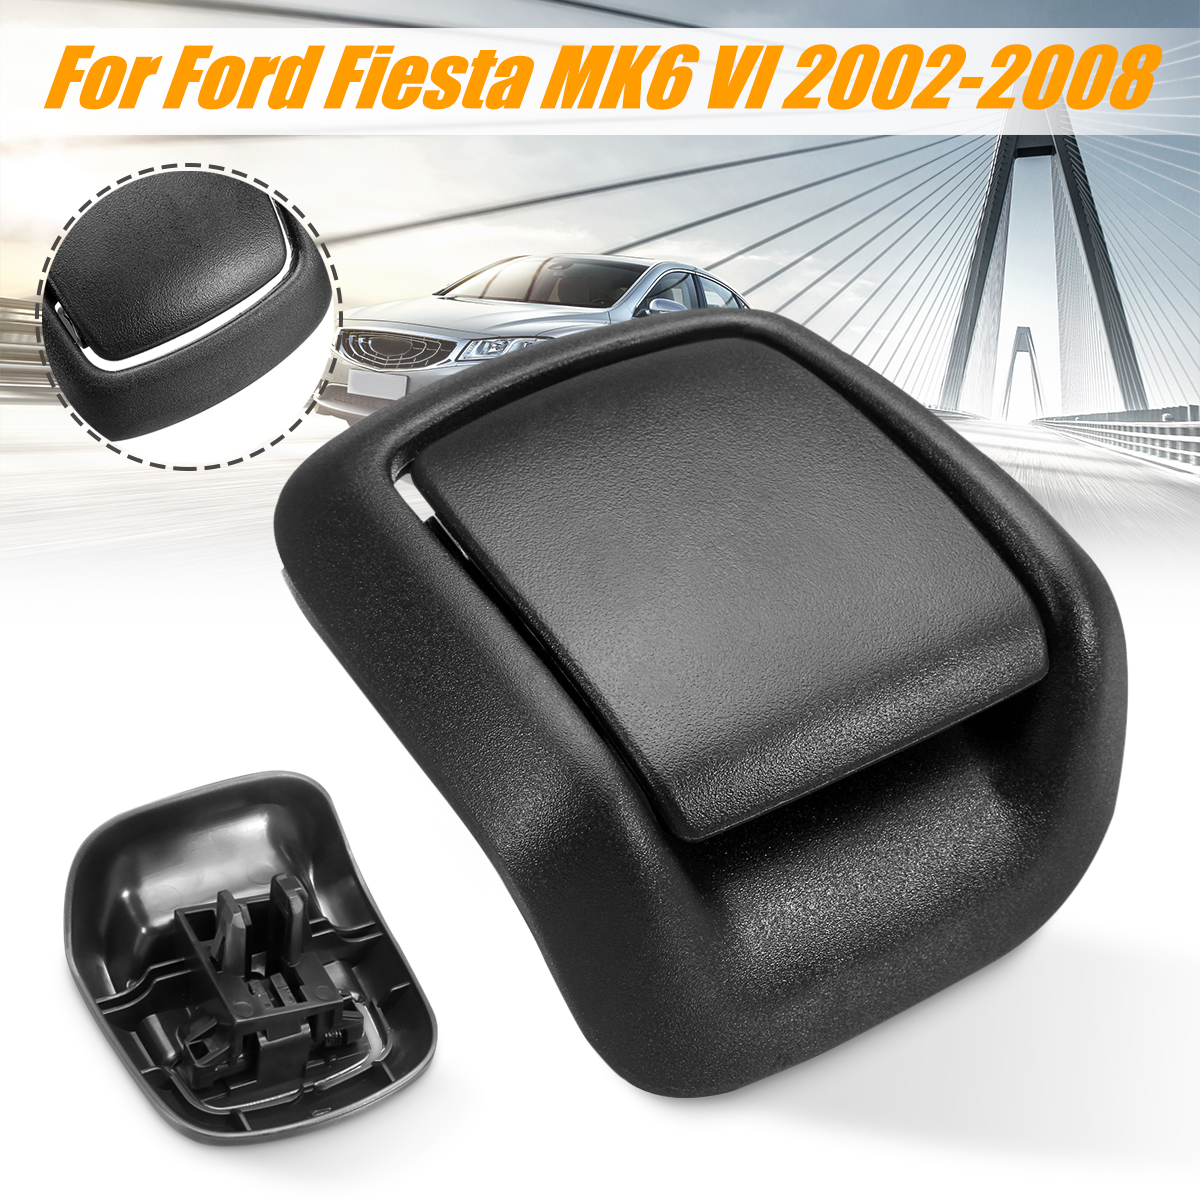 FORD FIESTA 6 MK6  2002-2008 Seat Tilt Handle FRONT LEFT /& RIGHT X 2 pcs NEW !!!